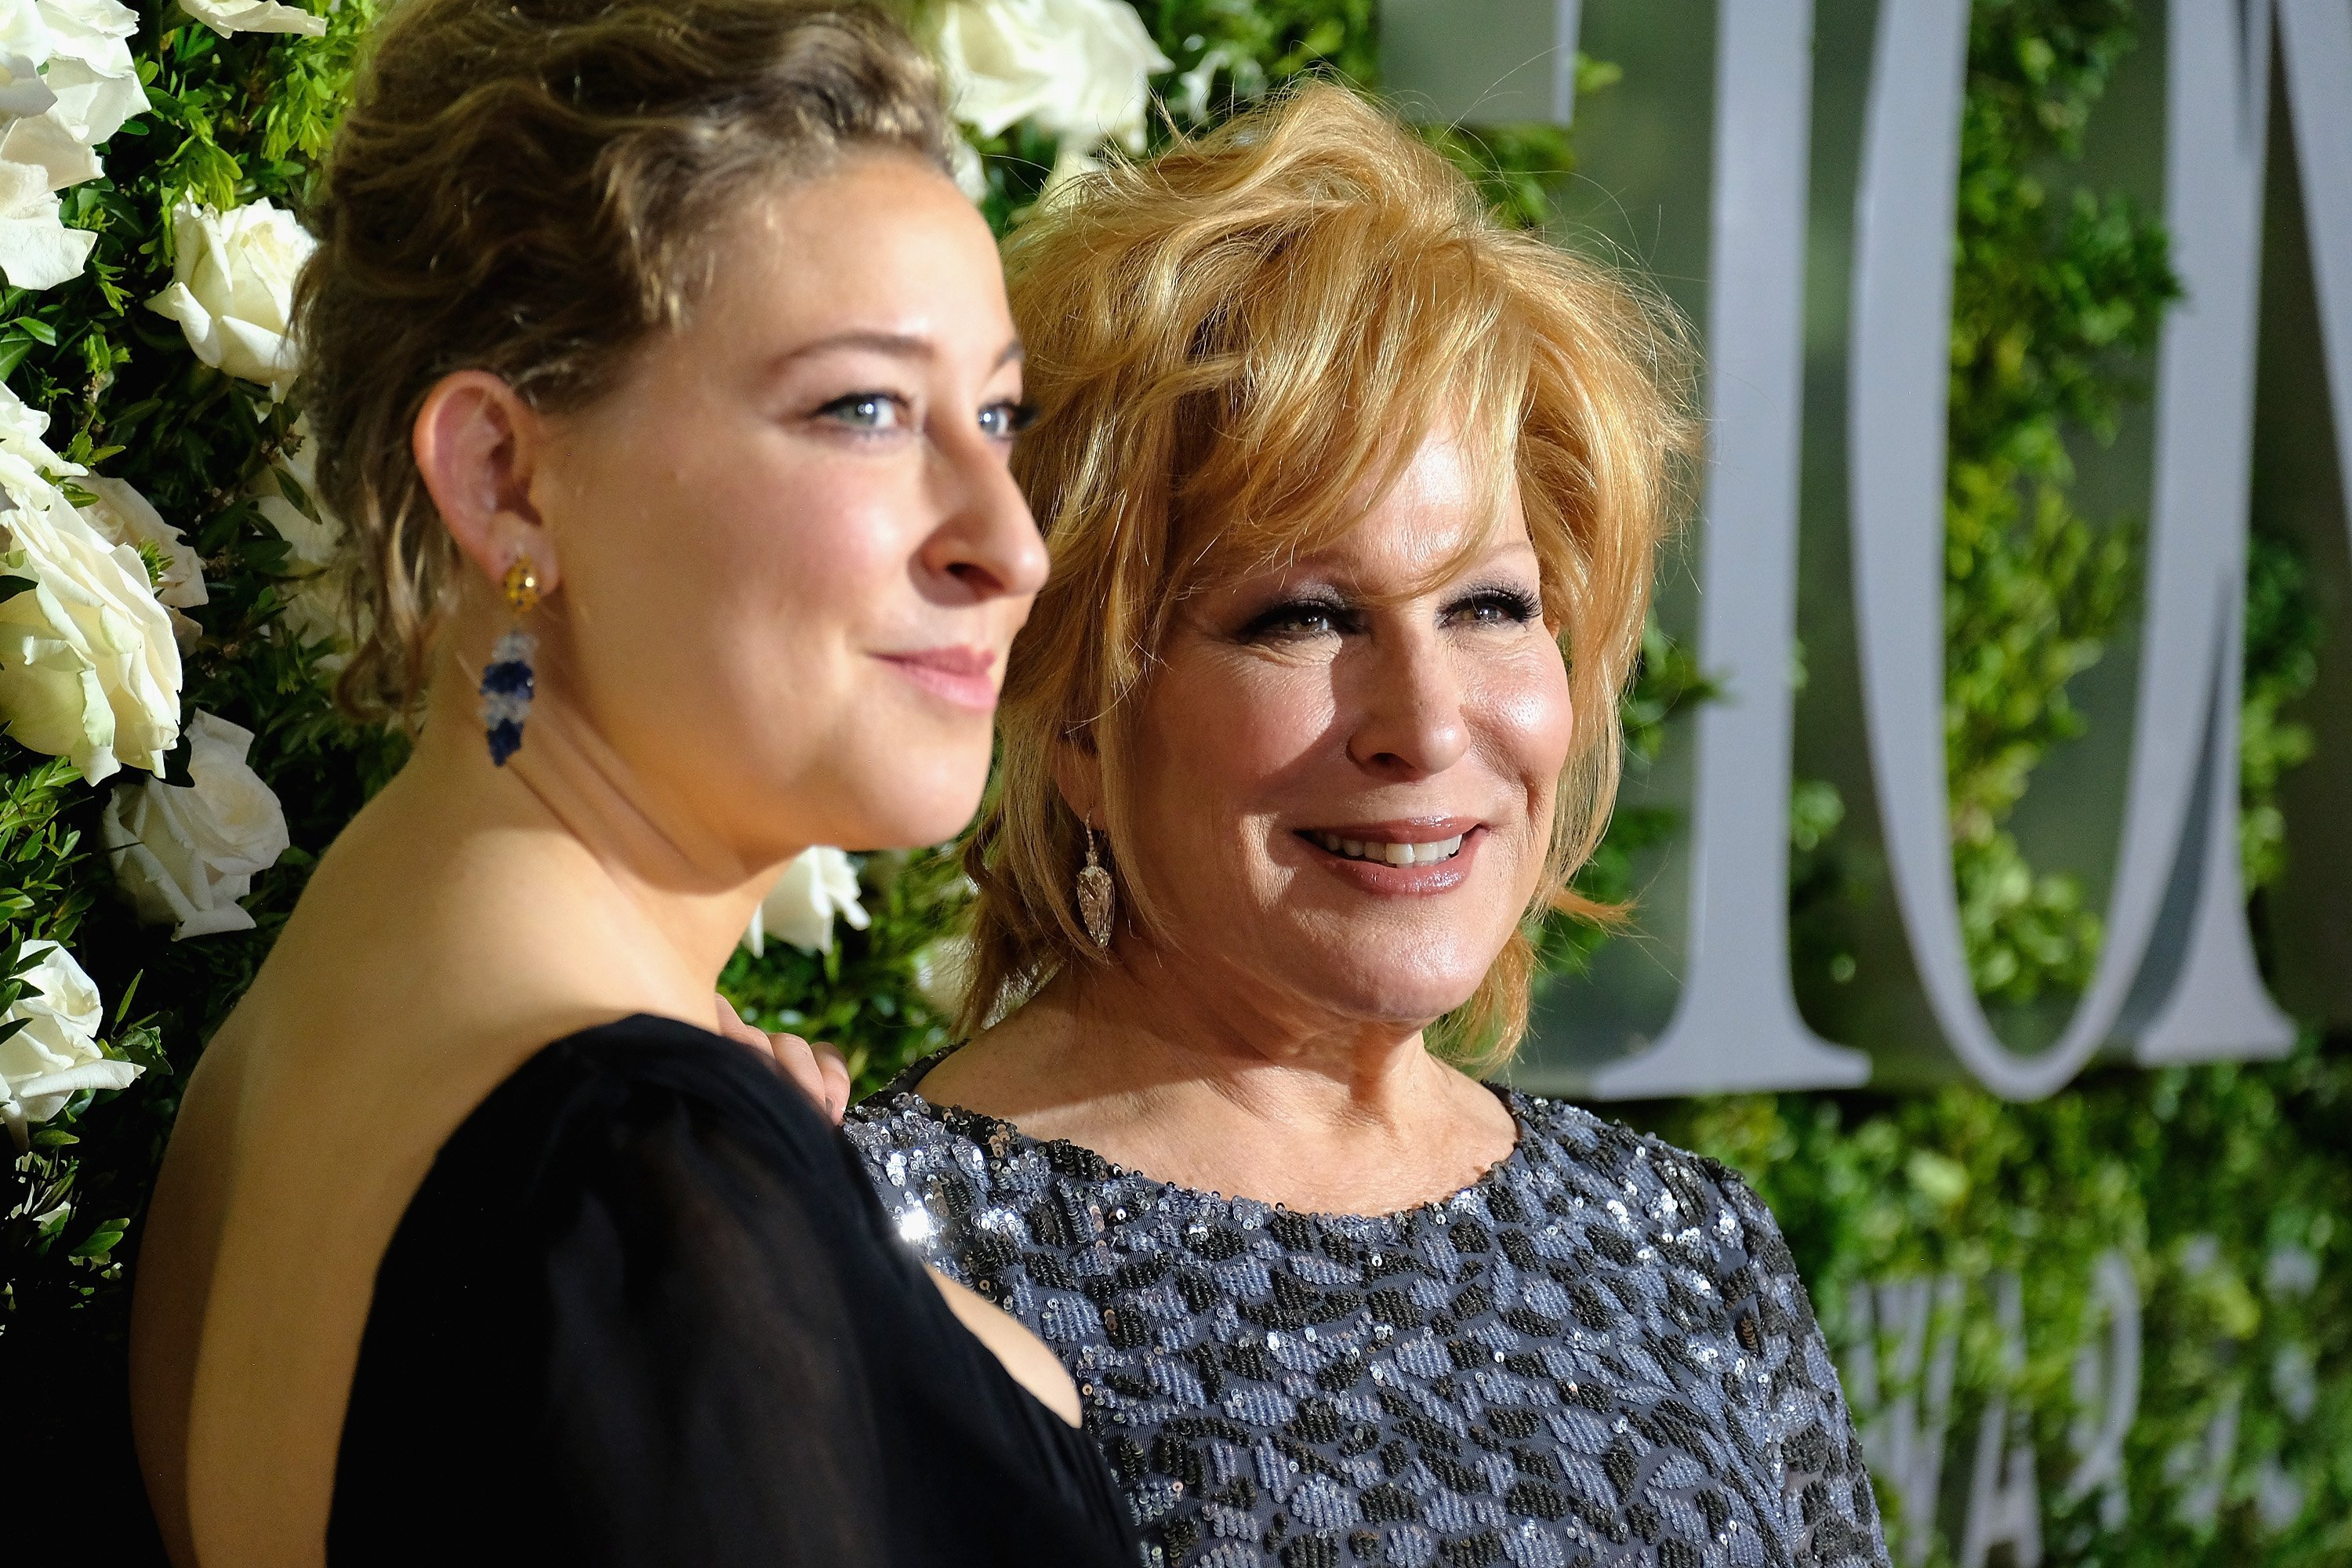 Sophie Von Haselberg with Better Midler at the 2017 Tony Awards at Radio City Music Hall | Photo: Getty Images